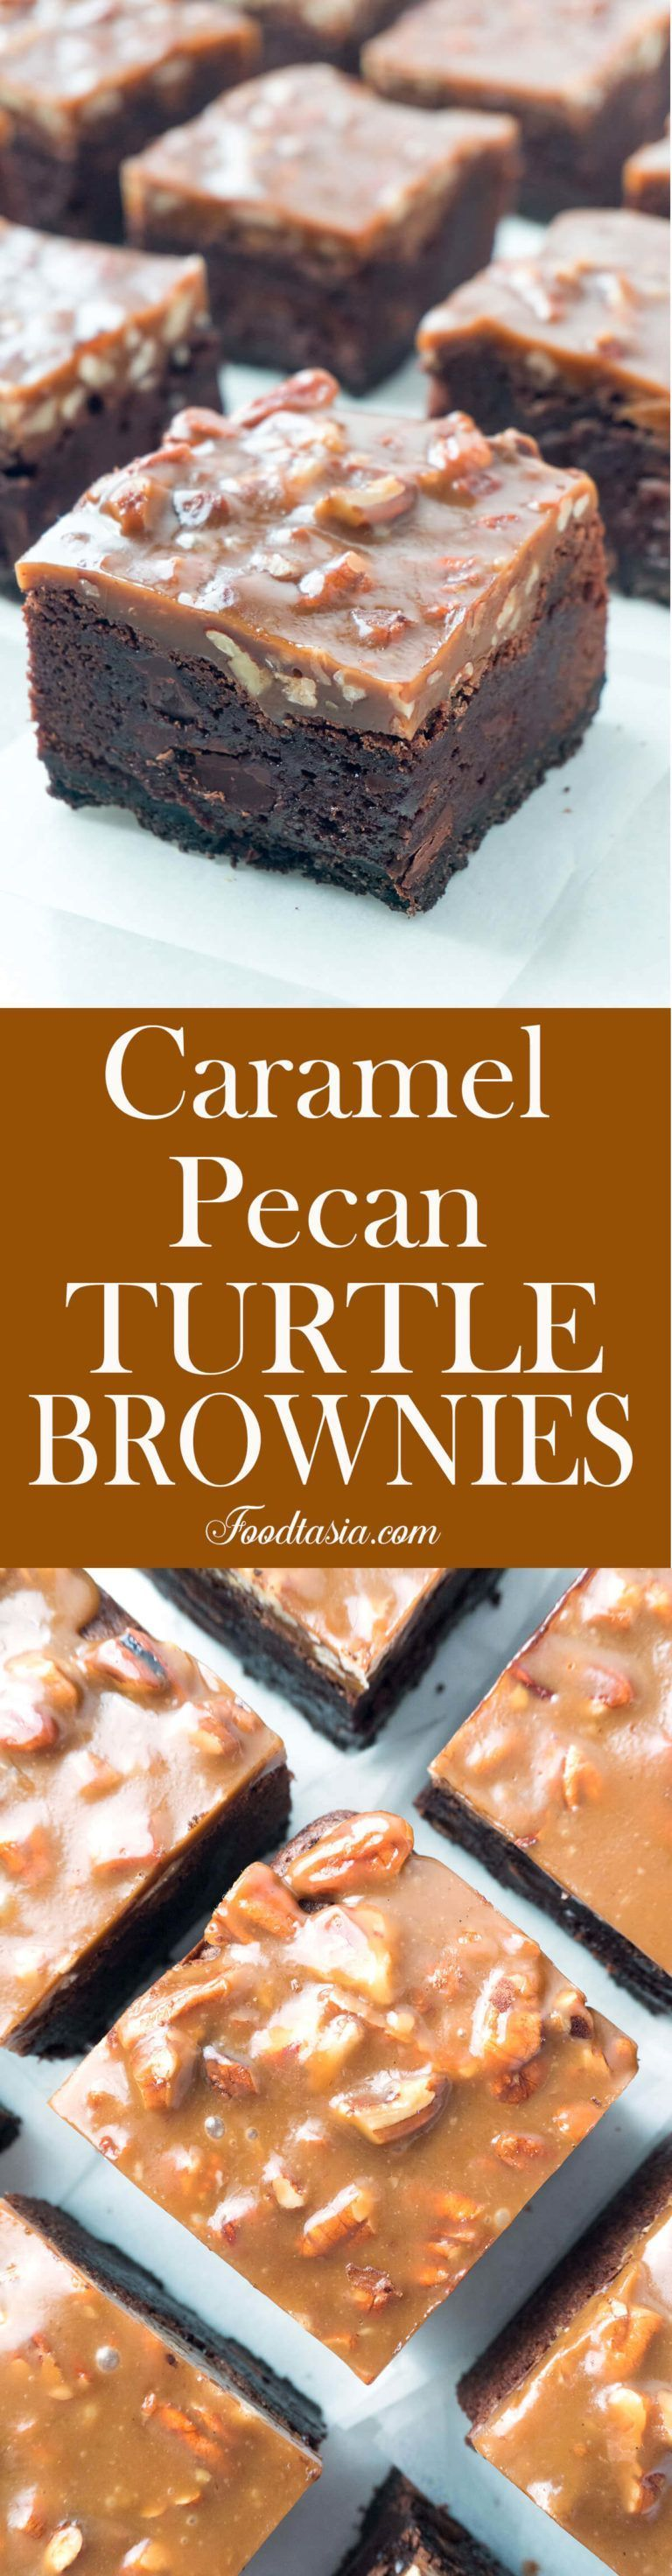 Fudgy Caramel Pecan Turtle Brownies #turtlebrownies Triple-layer Fudgy Caramel Pecan Turtle Brownies - a dense, fudgy brownie on top of an Oreo cookie crust topped with a chewy caramel and pecan topping. #turtlebrownies Fudgy Caramel Pecan Turtle Brownies #turtlebrownies Triple-layer Fudgy Caramel Pecan Turtle Brownies - a dense, fudgy brownie on top of an Oreo cookie crust topped with a chewy caramel and pecan topping. #turtlebrownies